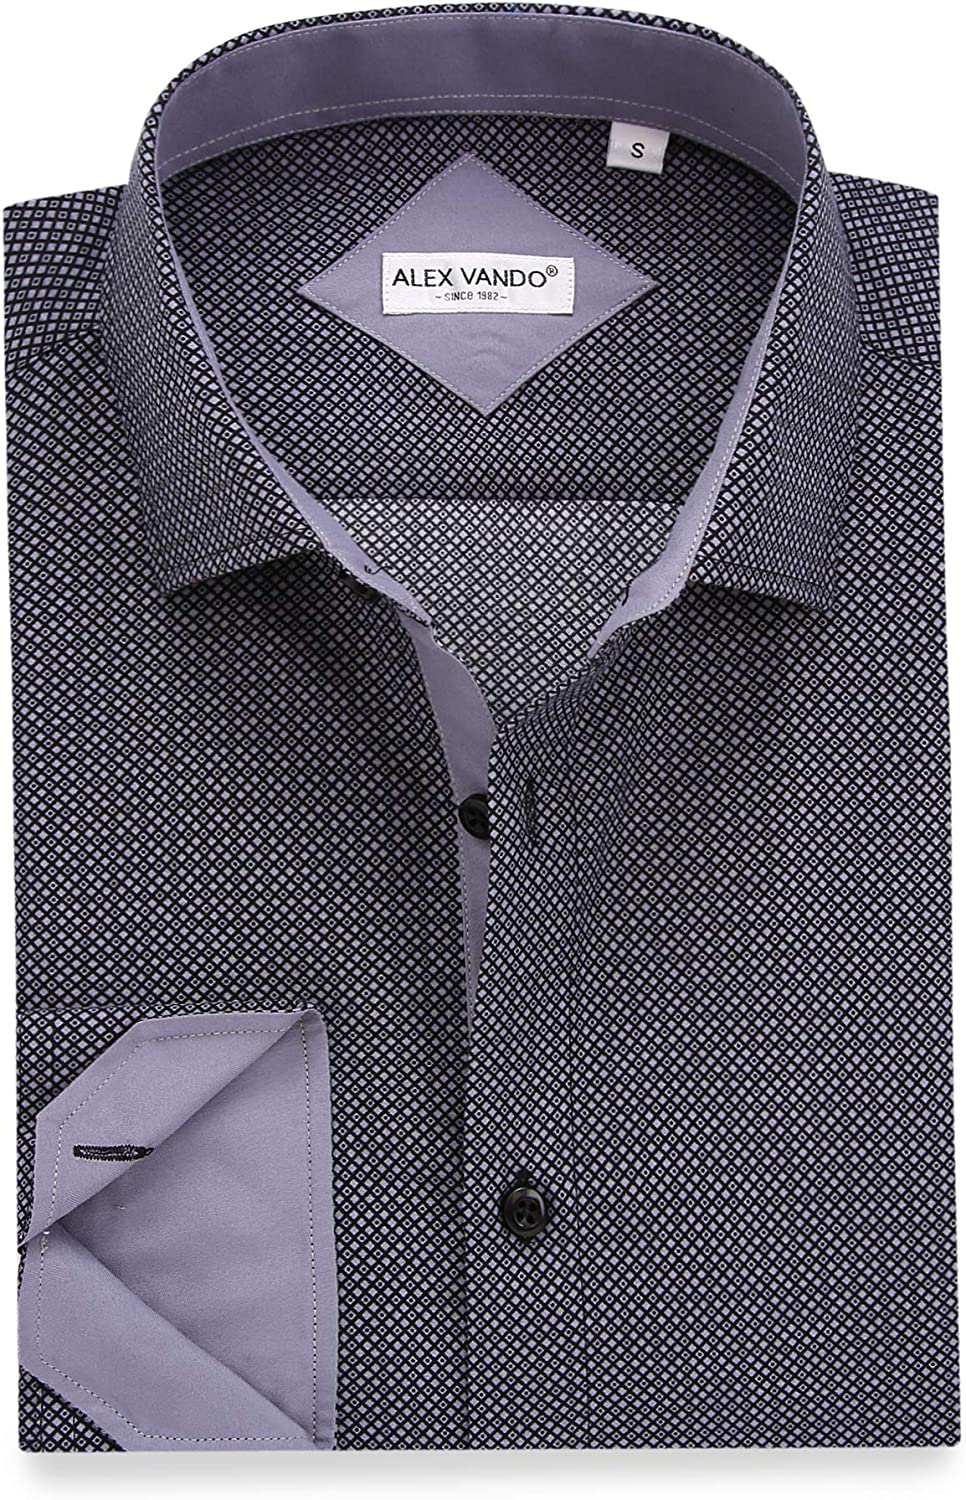 Alex Vando Mens Printed Dress Shirts Long Sleeve Regular Fit Fashion Shirt at  Men's Clothing store